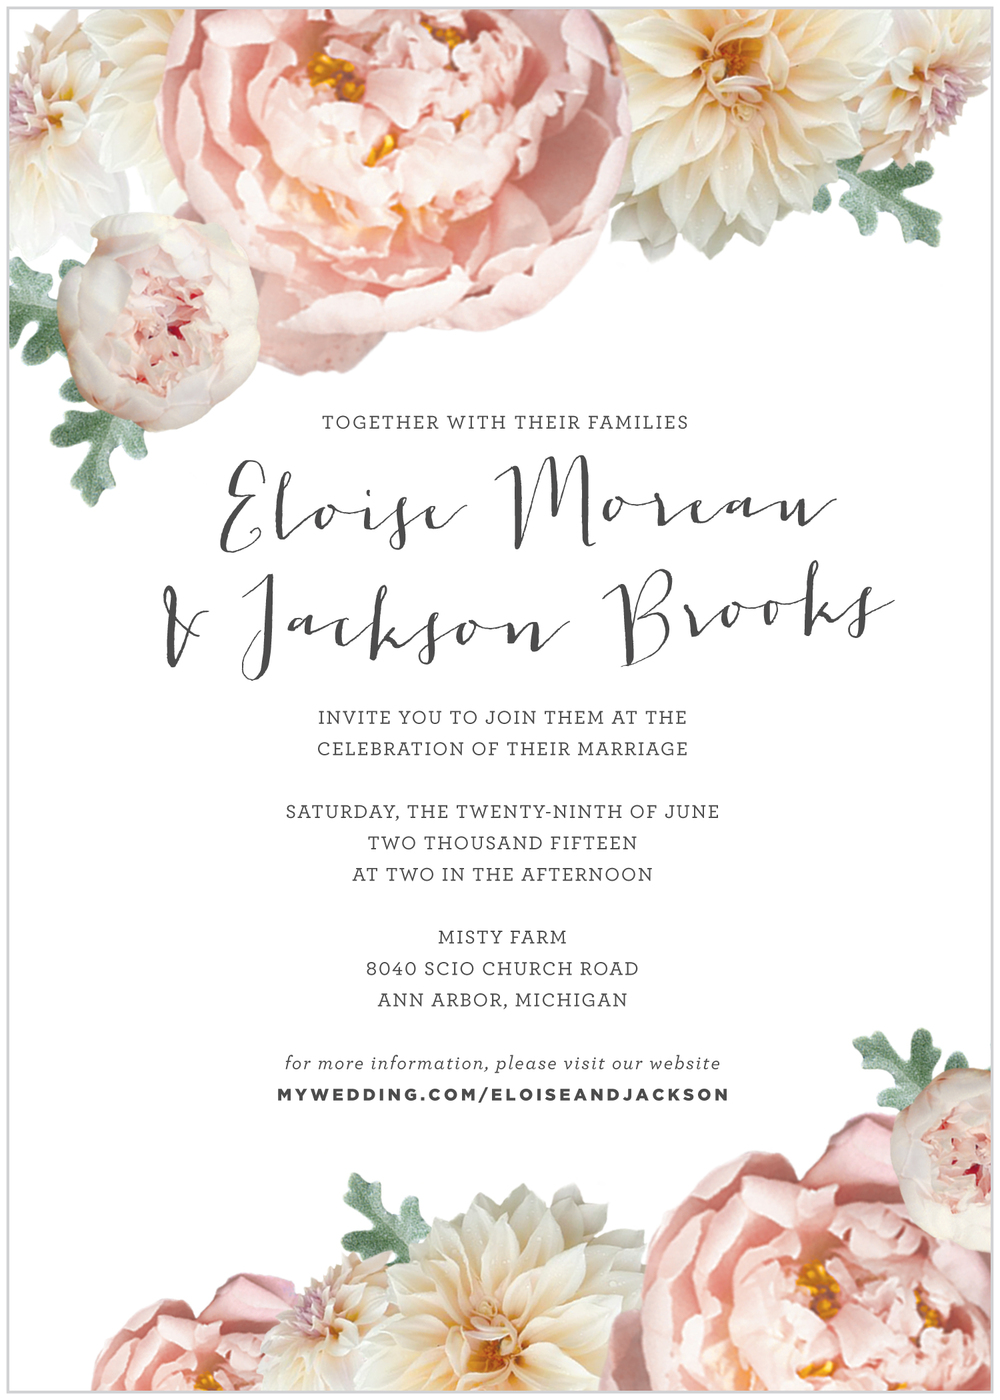 Invitation Blush Peony Alisa Bobzien Design Stationery